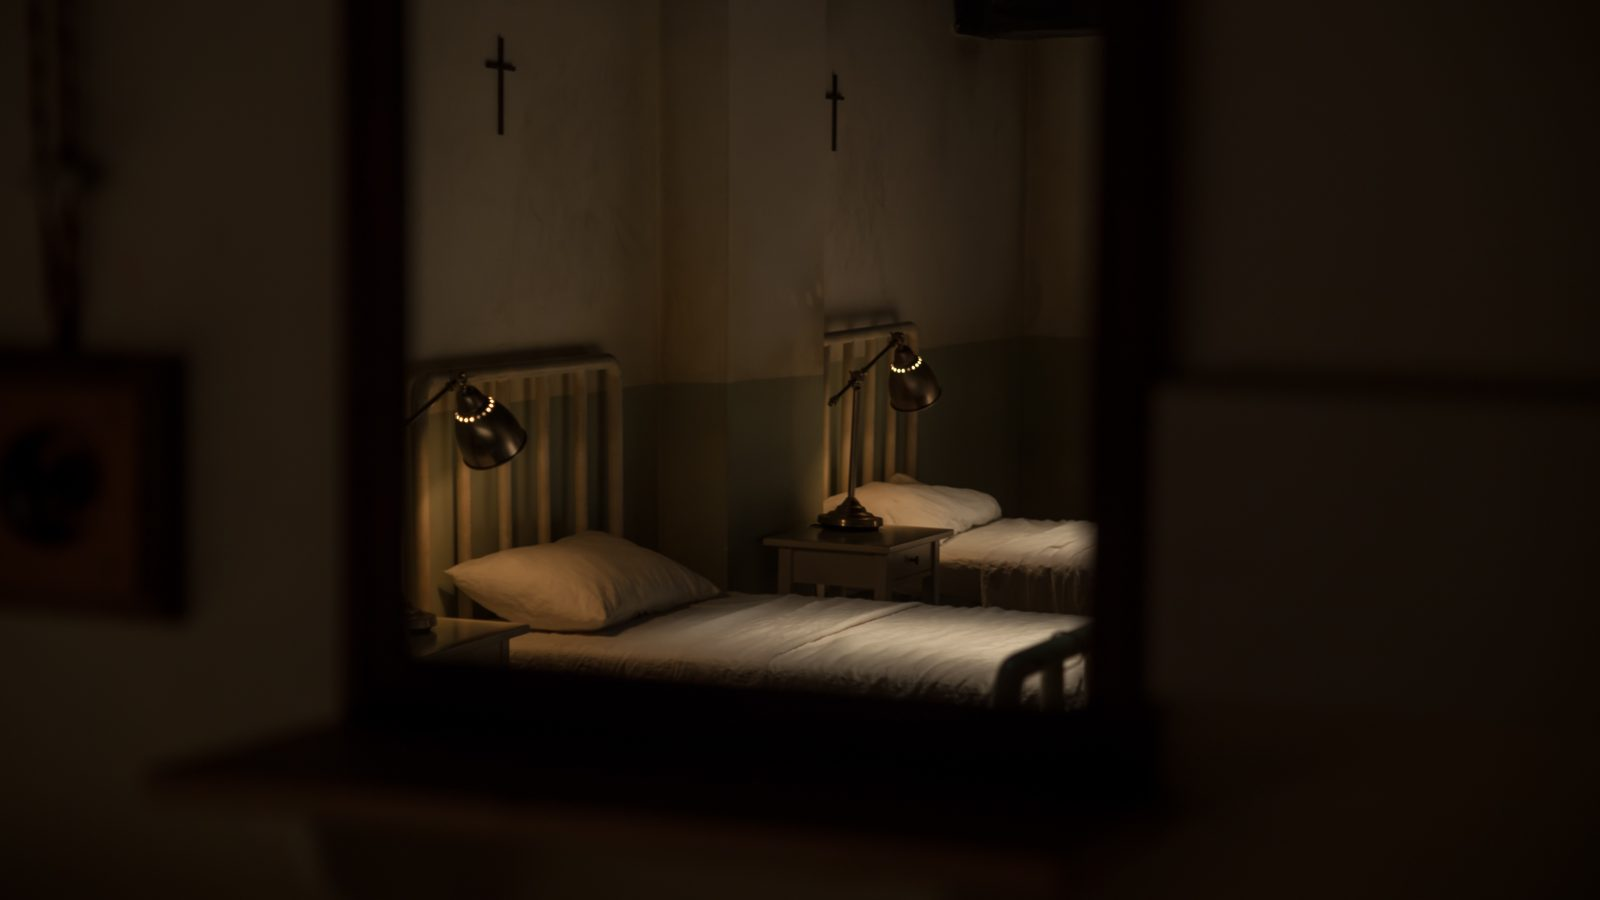 Two 1930s hospital beds with anglepoise lamps. A crucifix is above each bed,